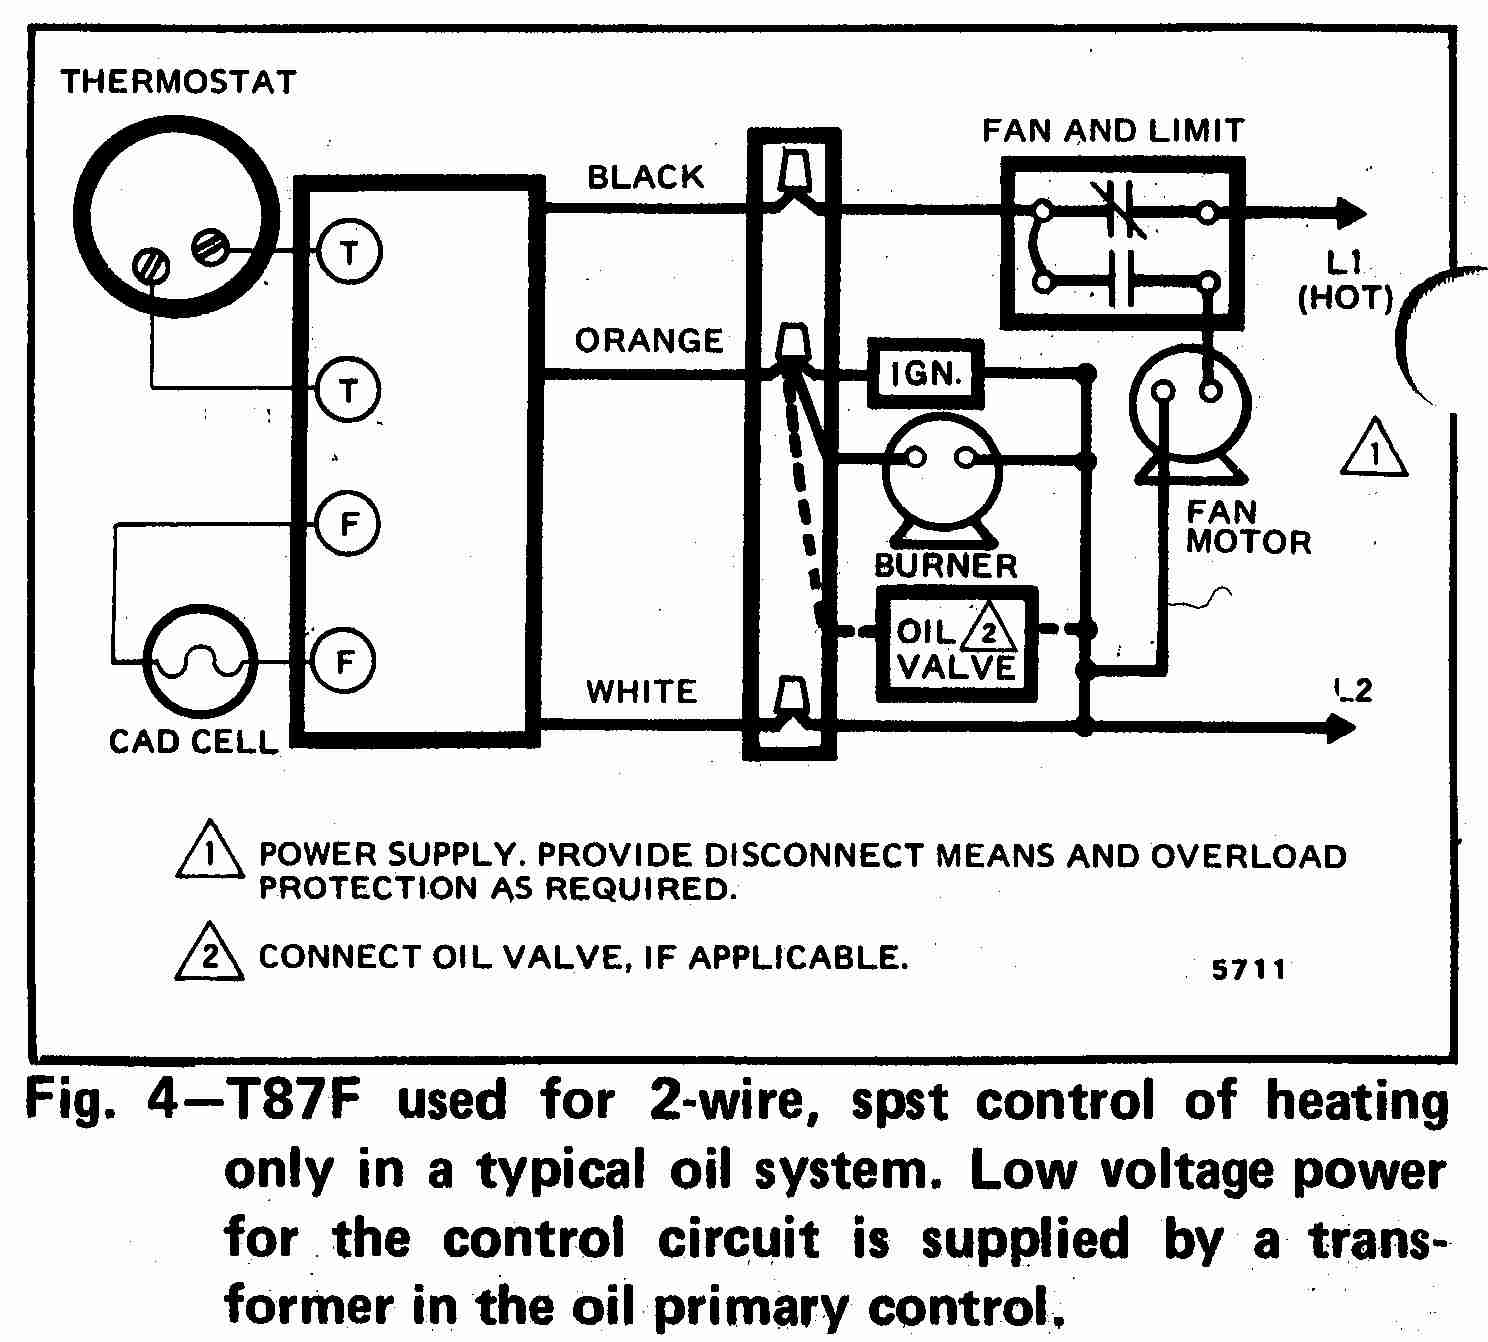 TT_T87F_0002_2W_DJF gas furnace wiring diagram 2006 gas furnace wiring diagram white-rodgers fan control center wiring diagram at bayanpartner.co